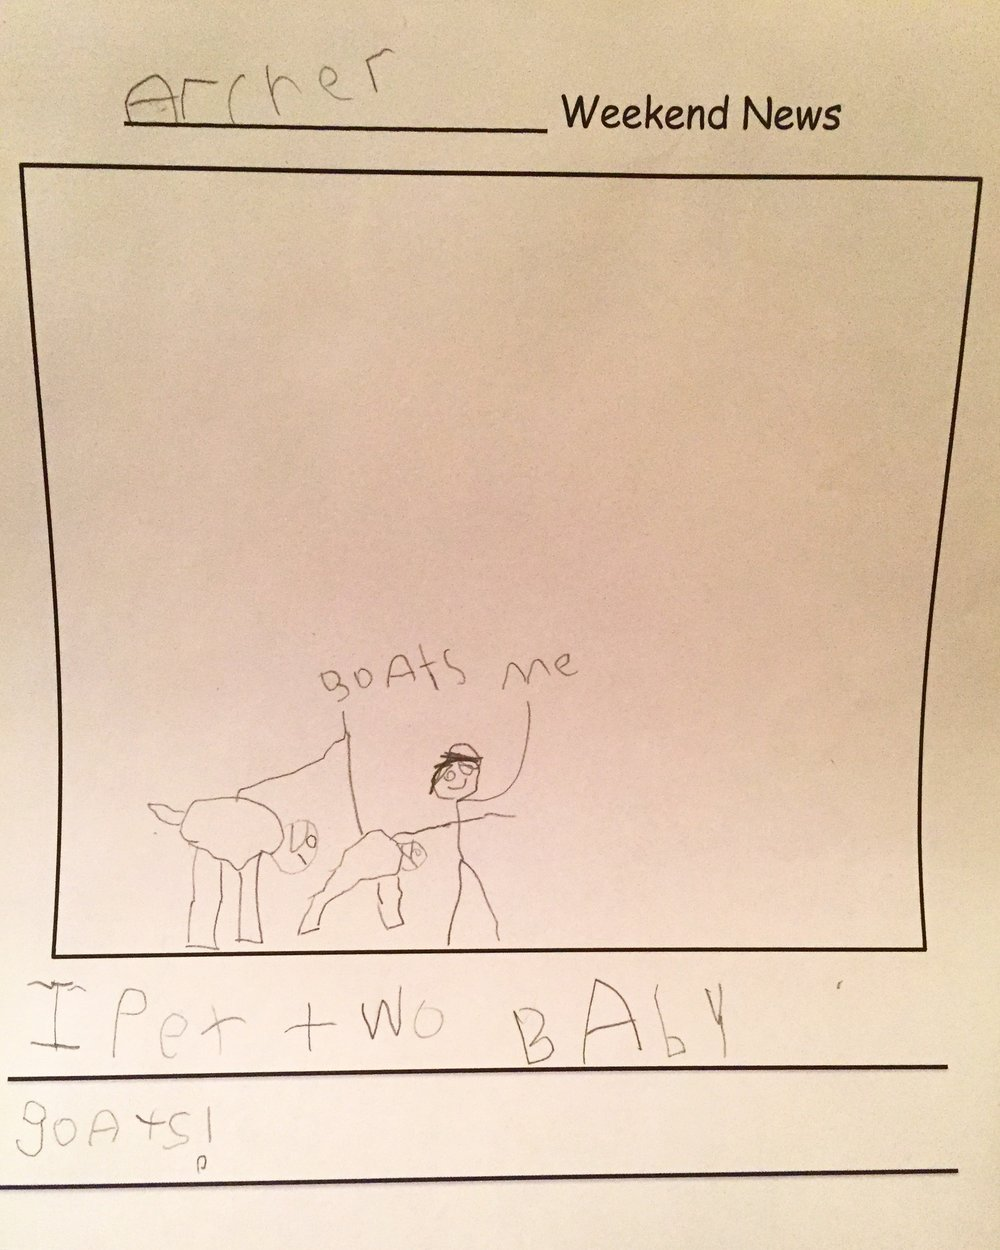 The goats were the highlight of Archer's weekend. He wrote about them in his Weekend News and excitedly shared his experience with his Brooklyn kindergarten class on Monday morning.